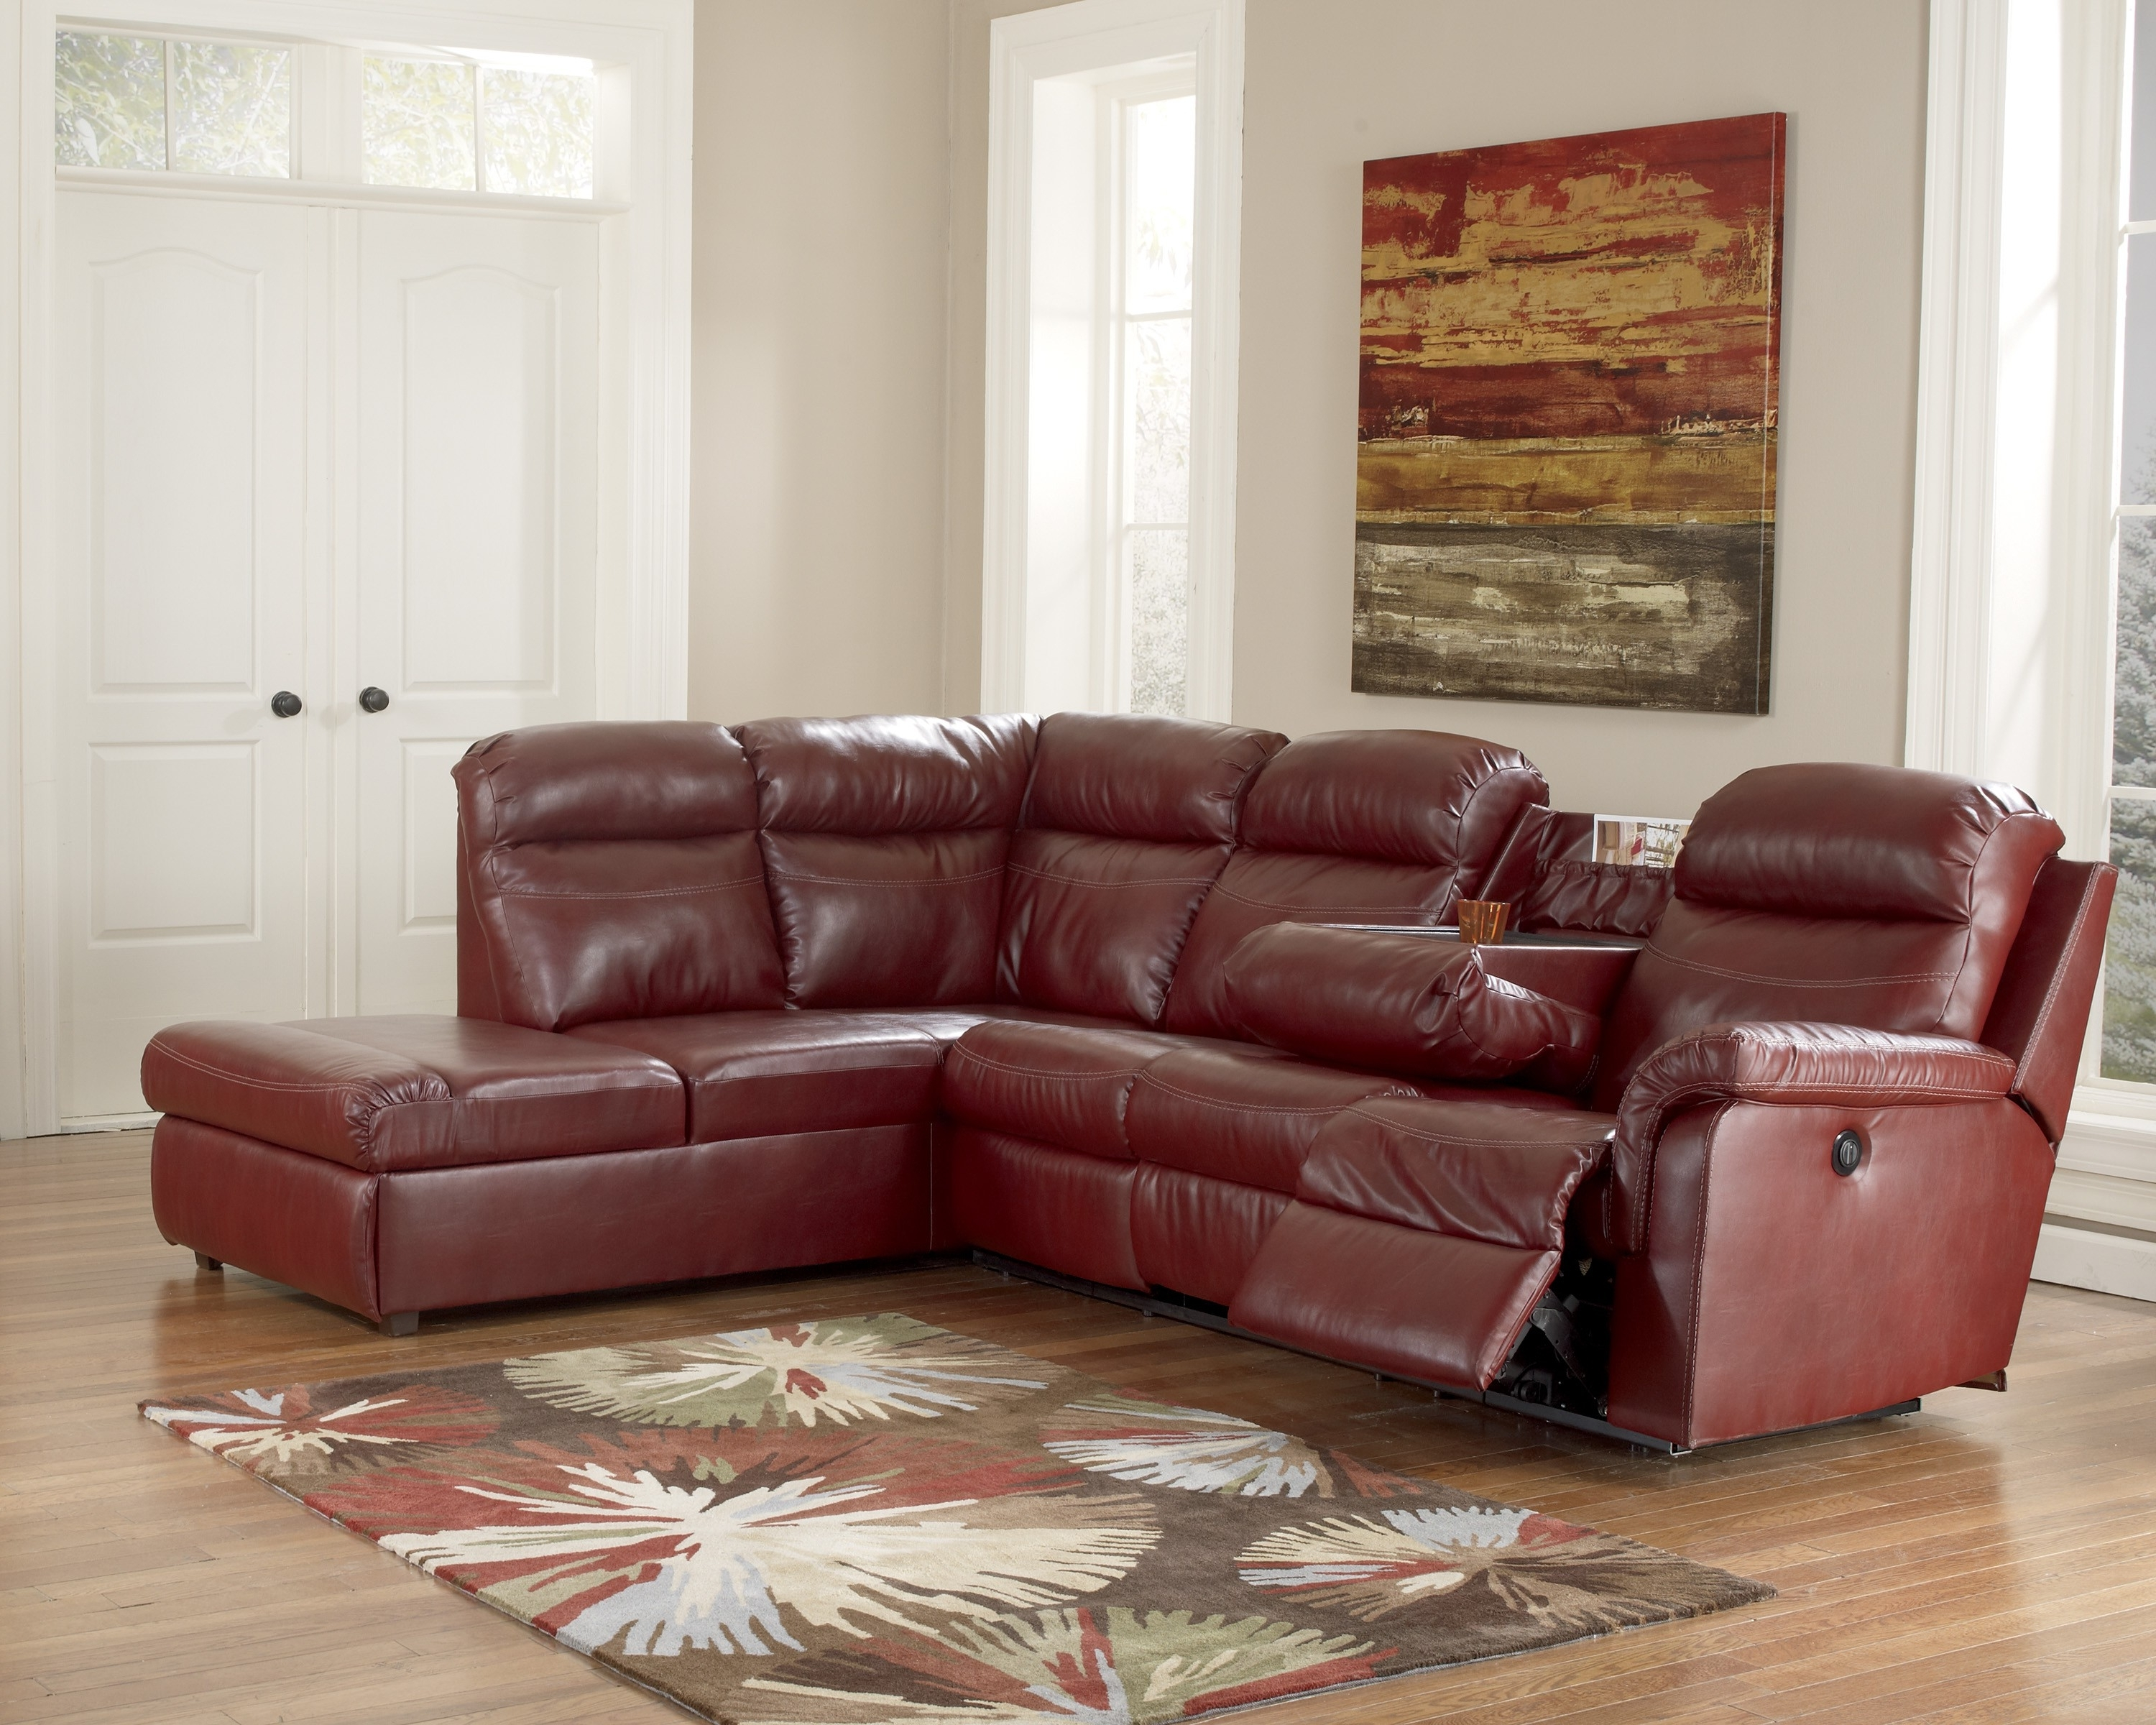 Beautiful Leather Sectional With Chaise And Recliner Gallery Throughout Most Popular Couches With Chaise And Recliner (View 4 of 15)